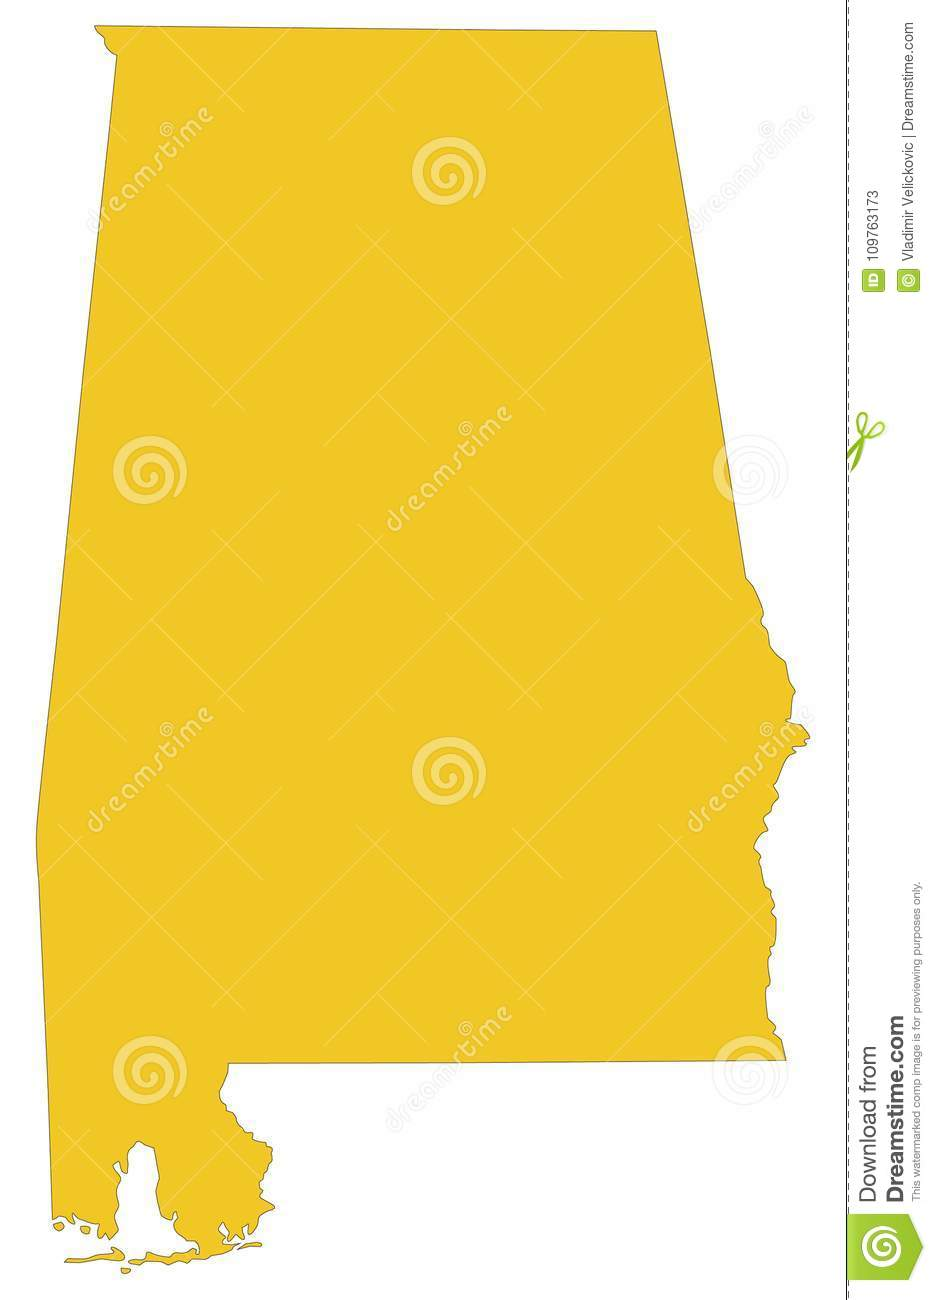 Alabama Map - State Of The United States Stock Vector - Illustration ...